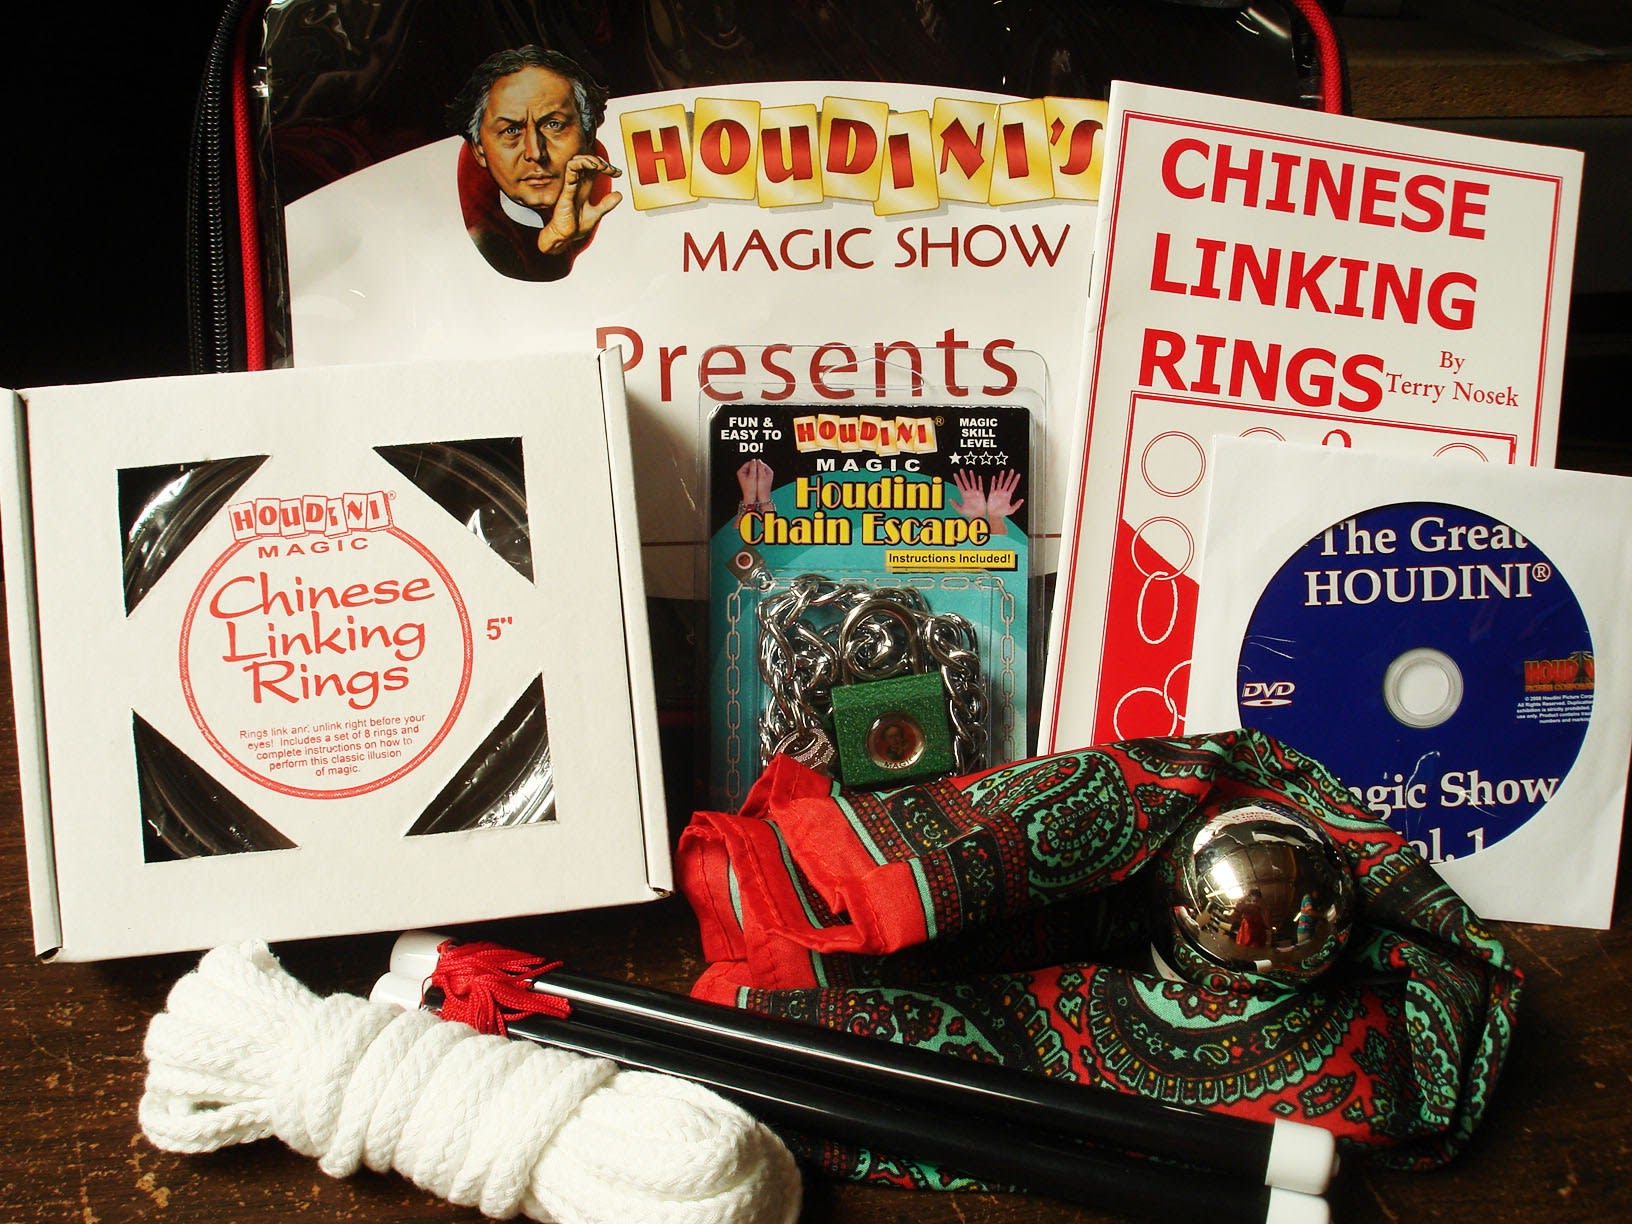 Houdini's Magic Show Set